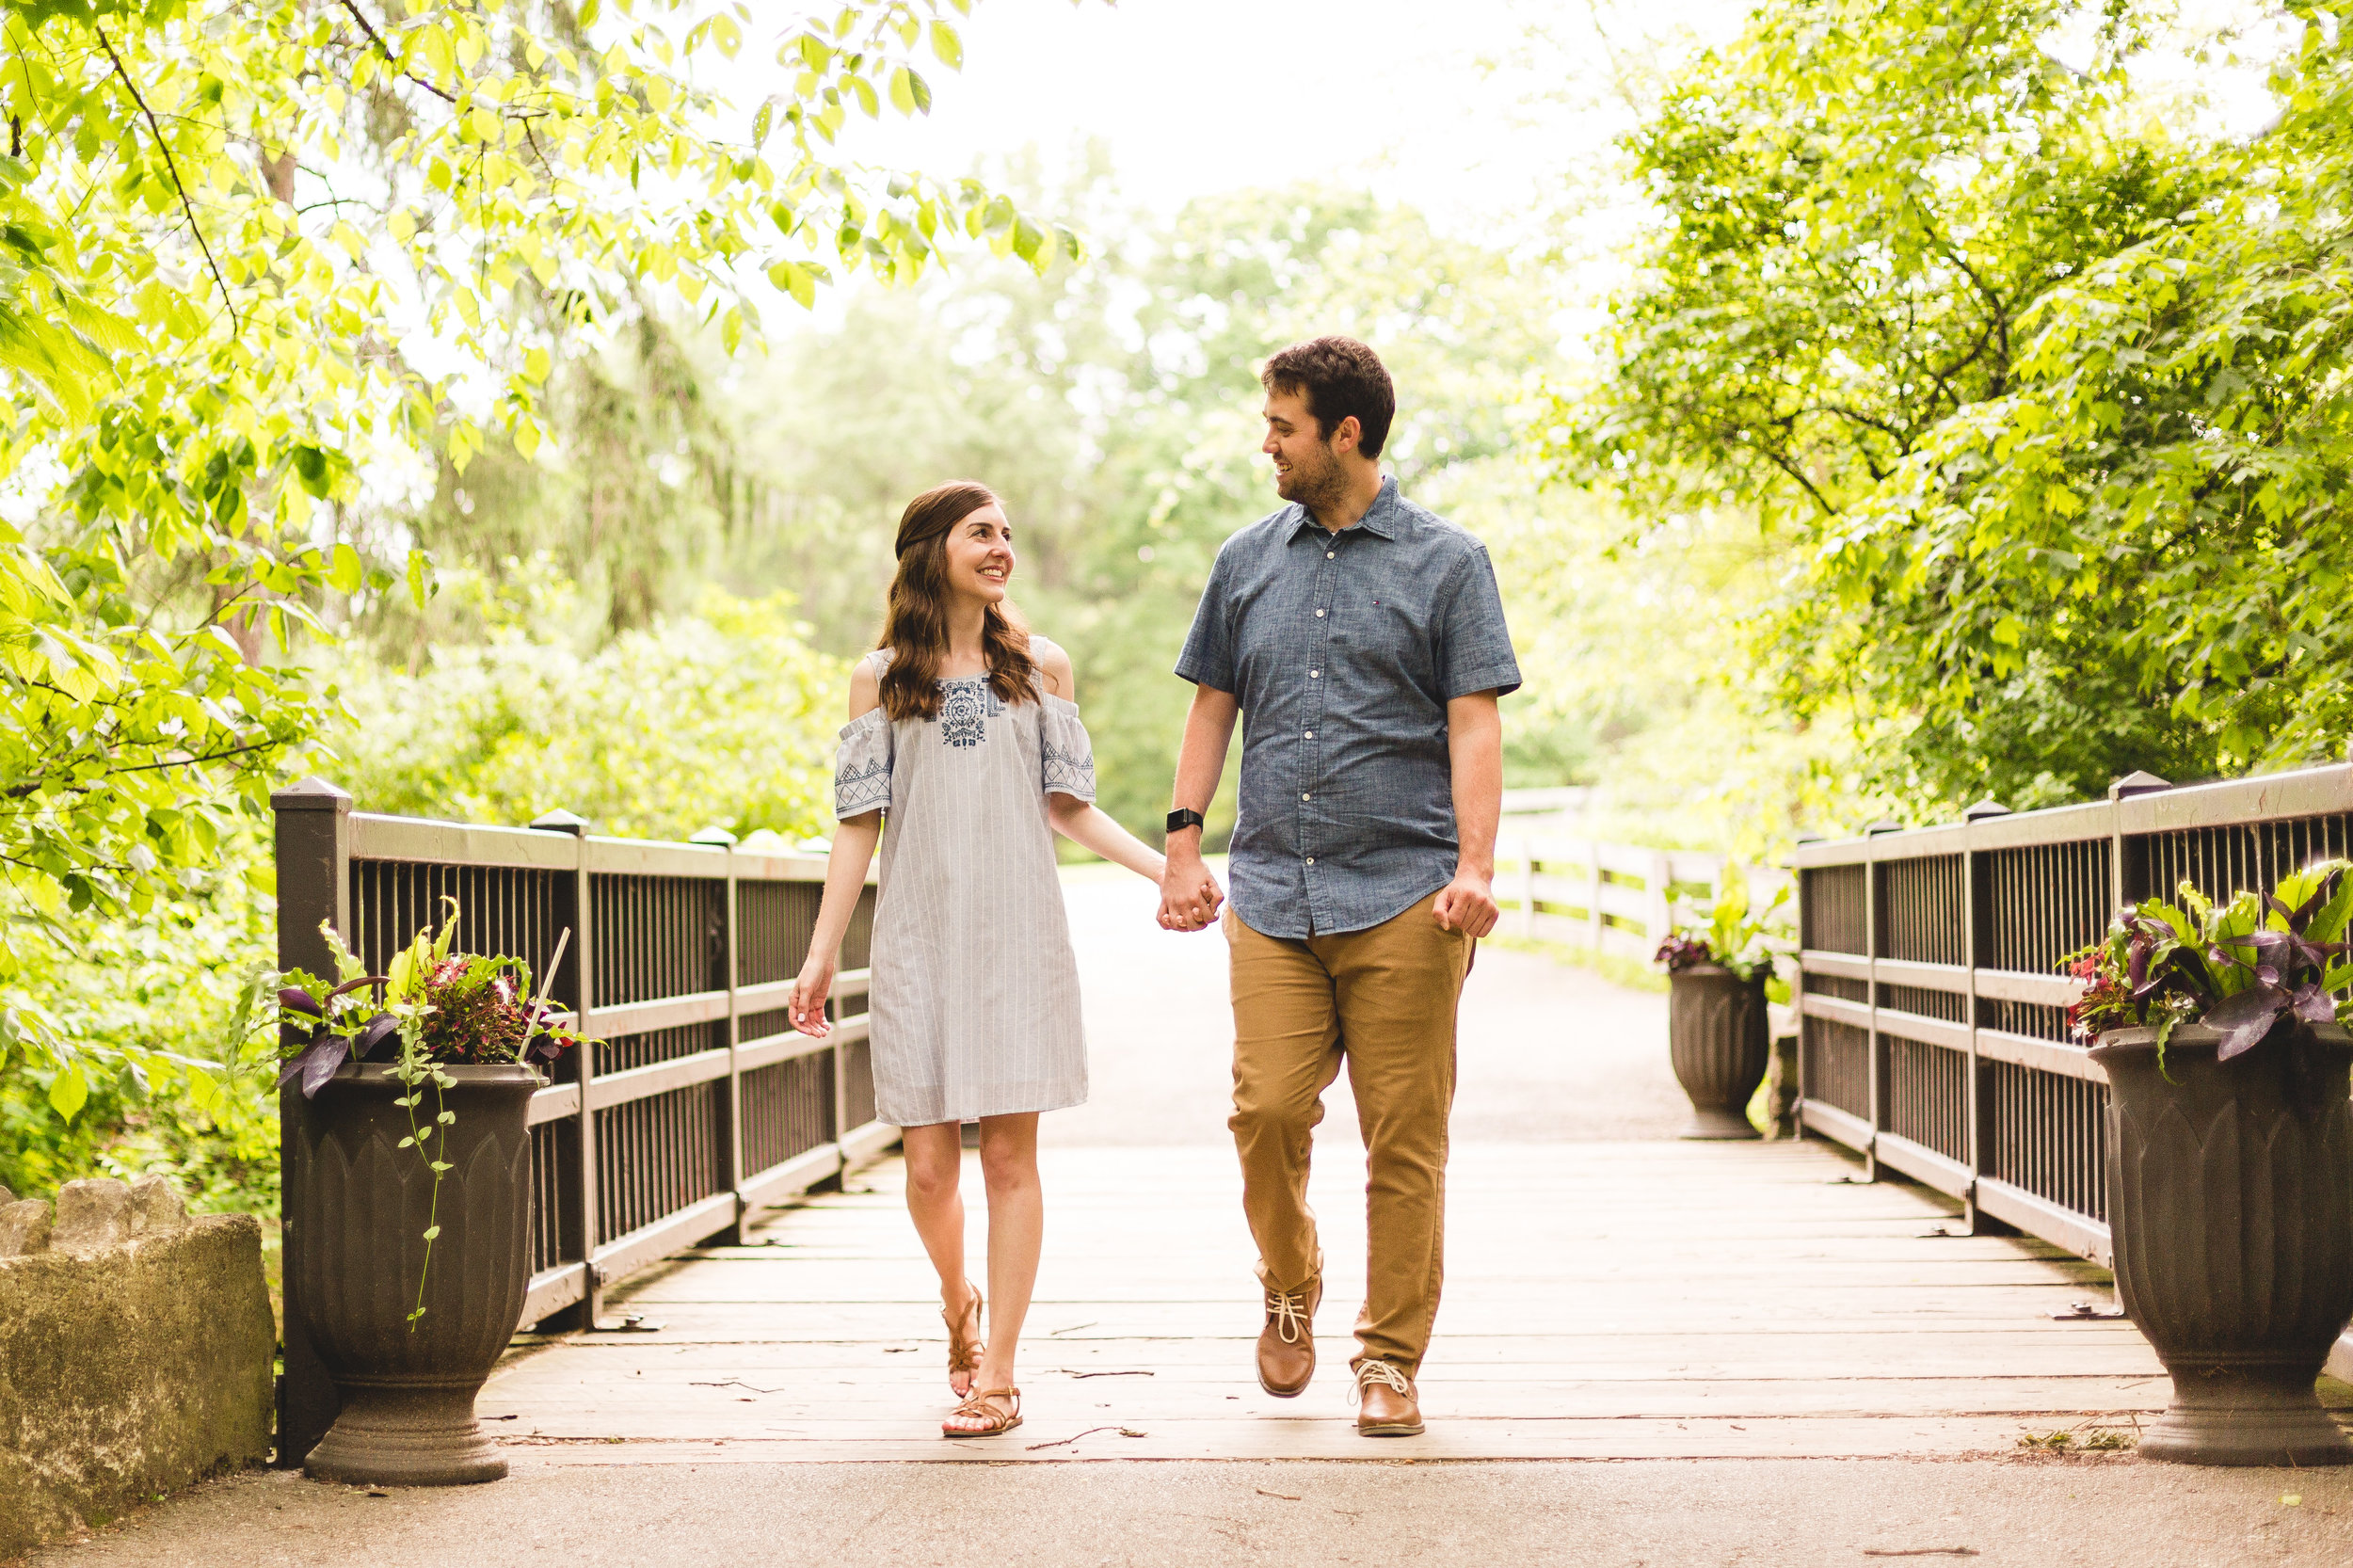 Jennifer and nate engaged walking while holding hands on a bridge in inniswood metro gardens